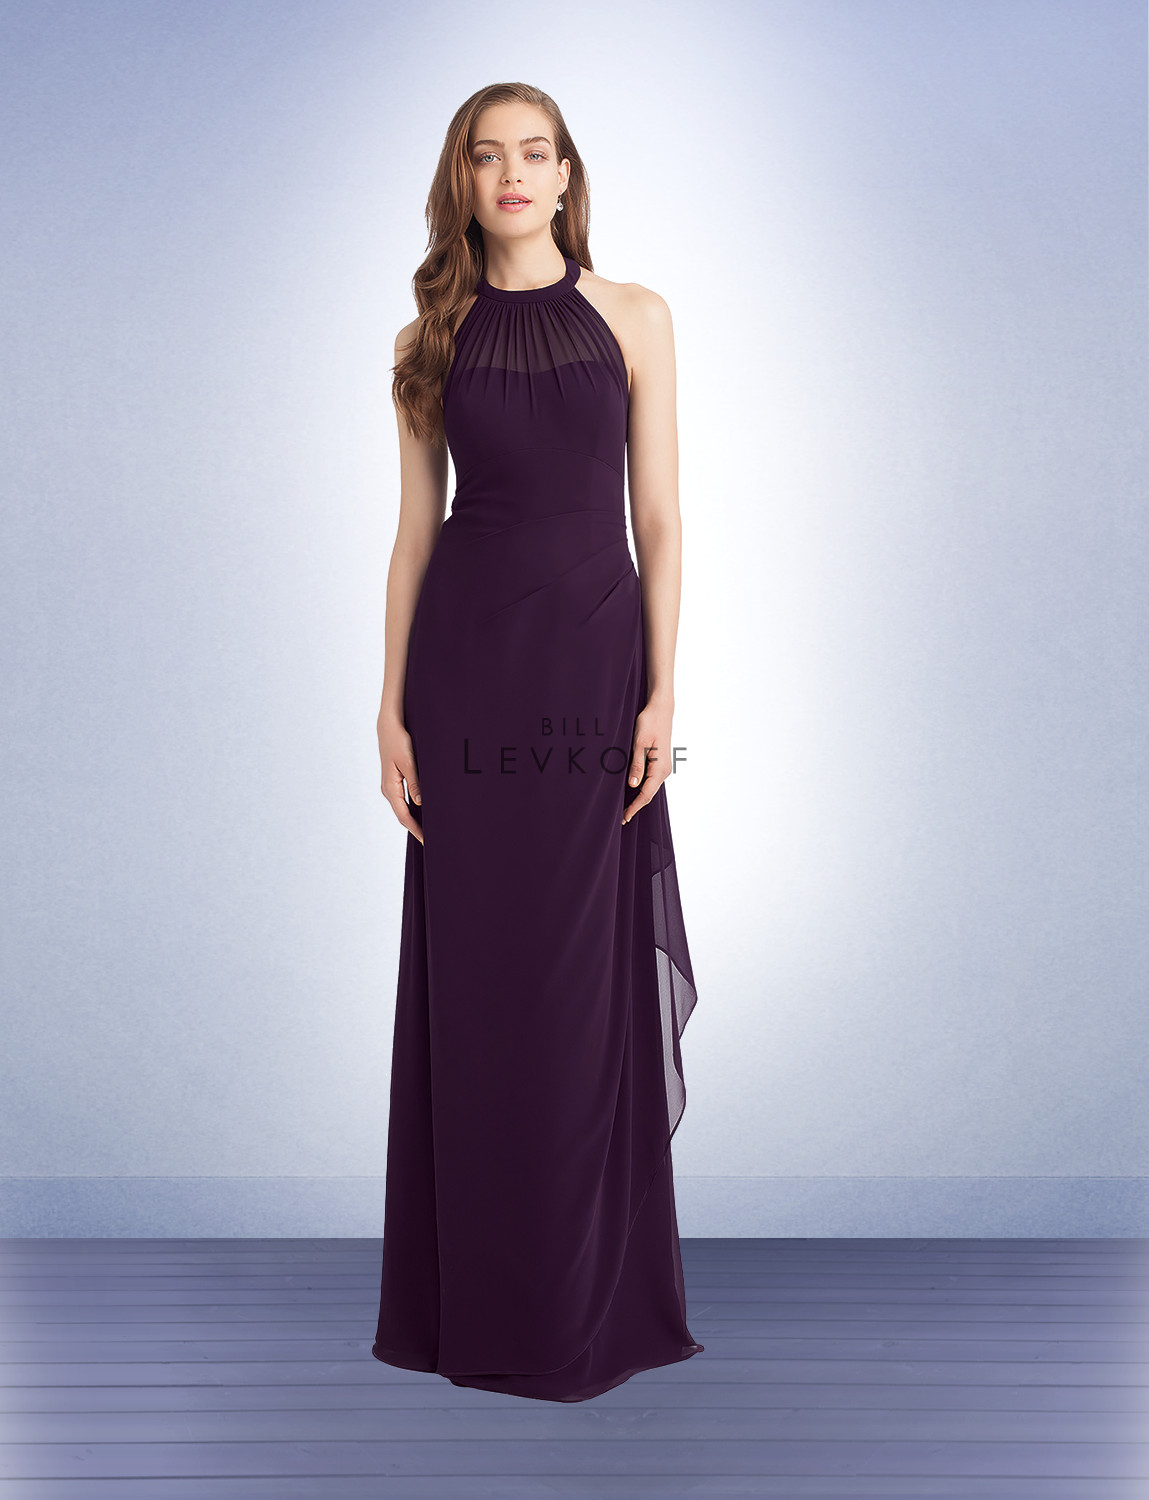 Bridesmaid Dresses Bill Levkoff 17